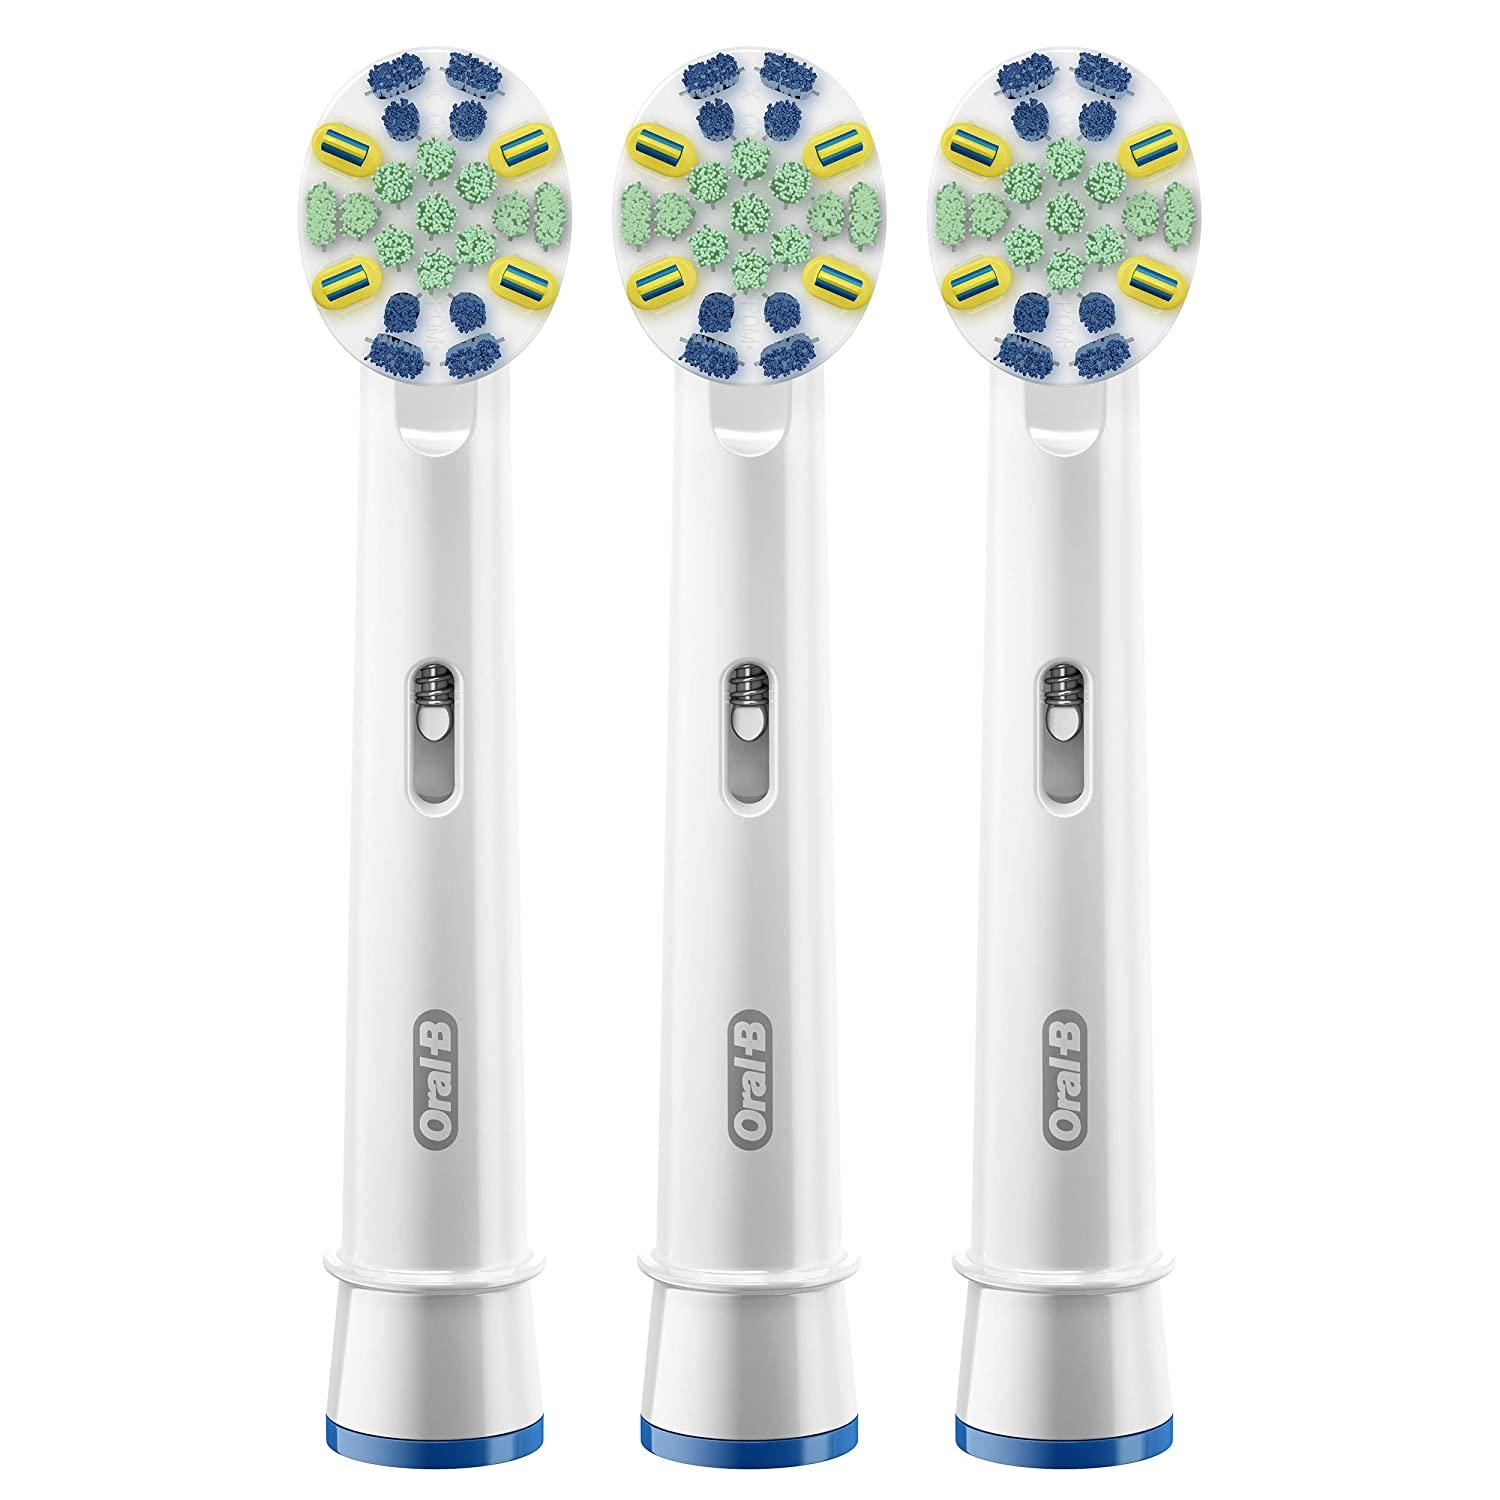 Oral-B FlossAction Electric Toothbrush Replacement Brush Heads, 3 Count with Bacteria Guard Procter and Gamble EB25AB-04